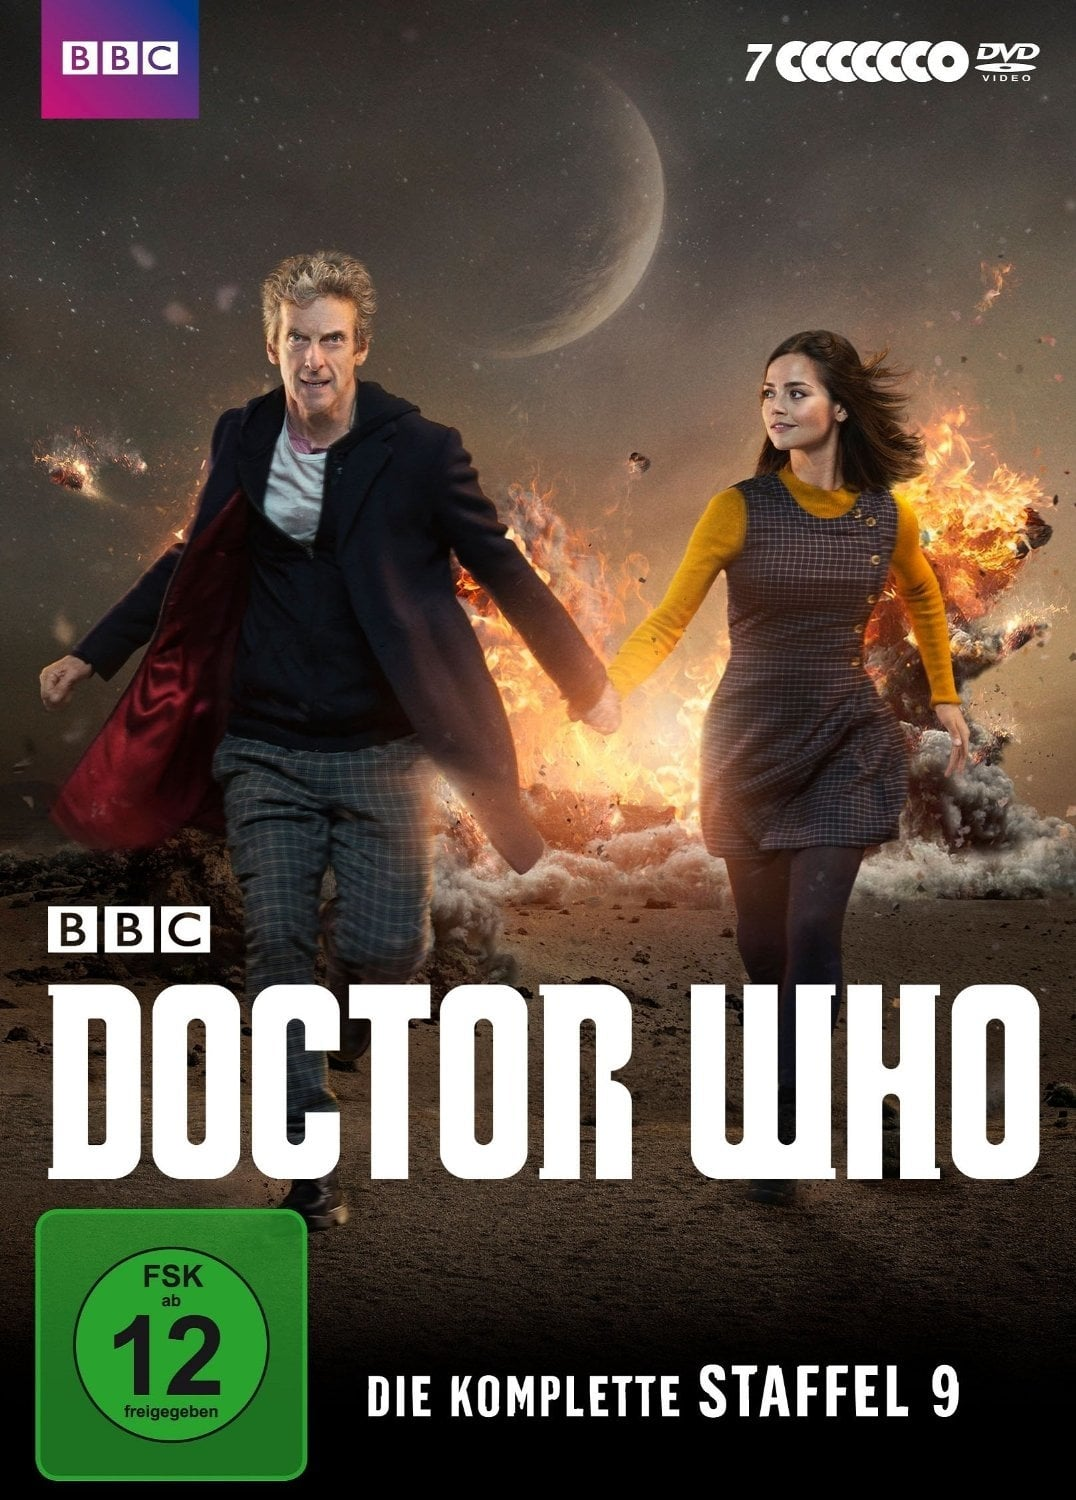 Doctor Who Season 9